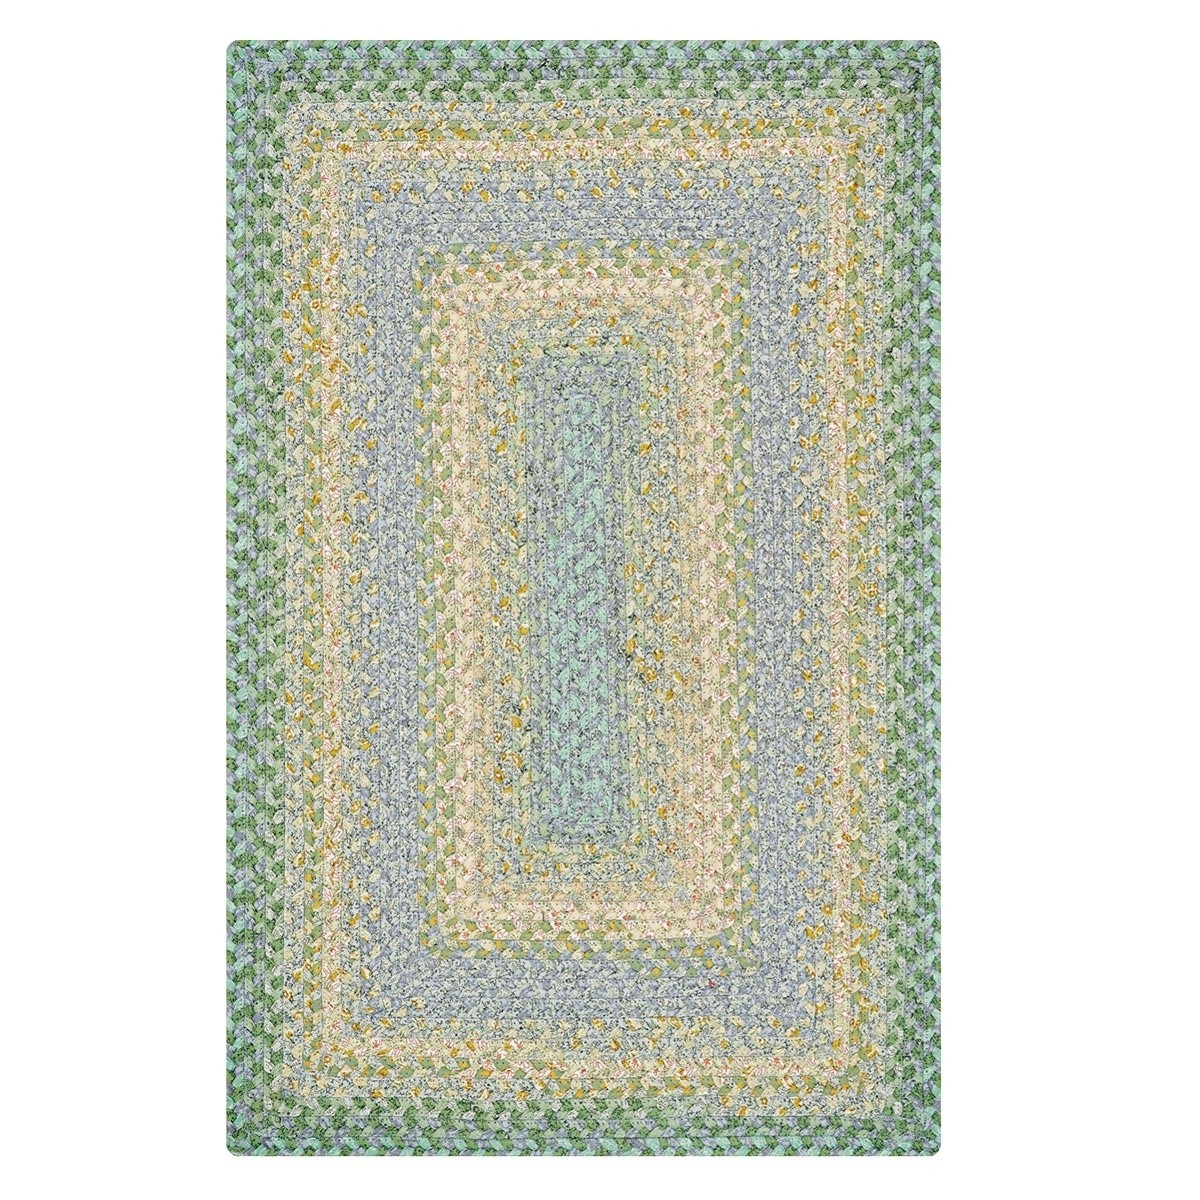 Online Rugs Buy Baja Blue Cotton Braided Rugs Online Homespice